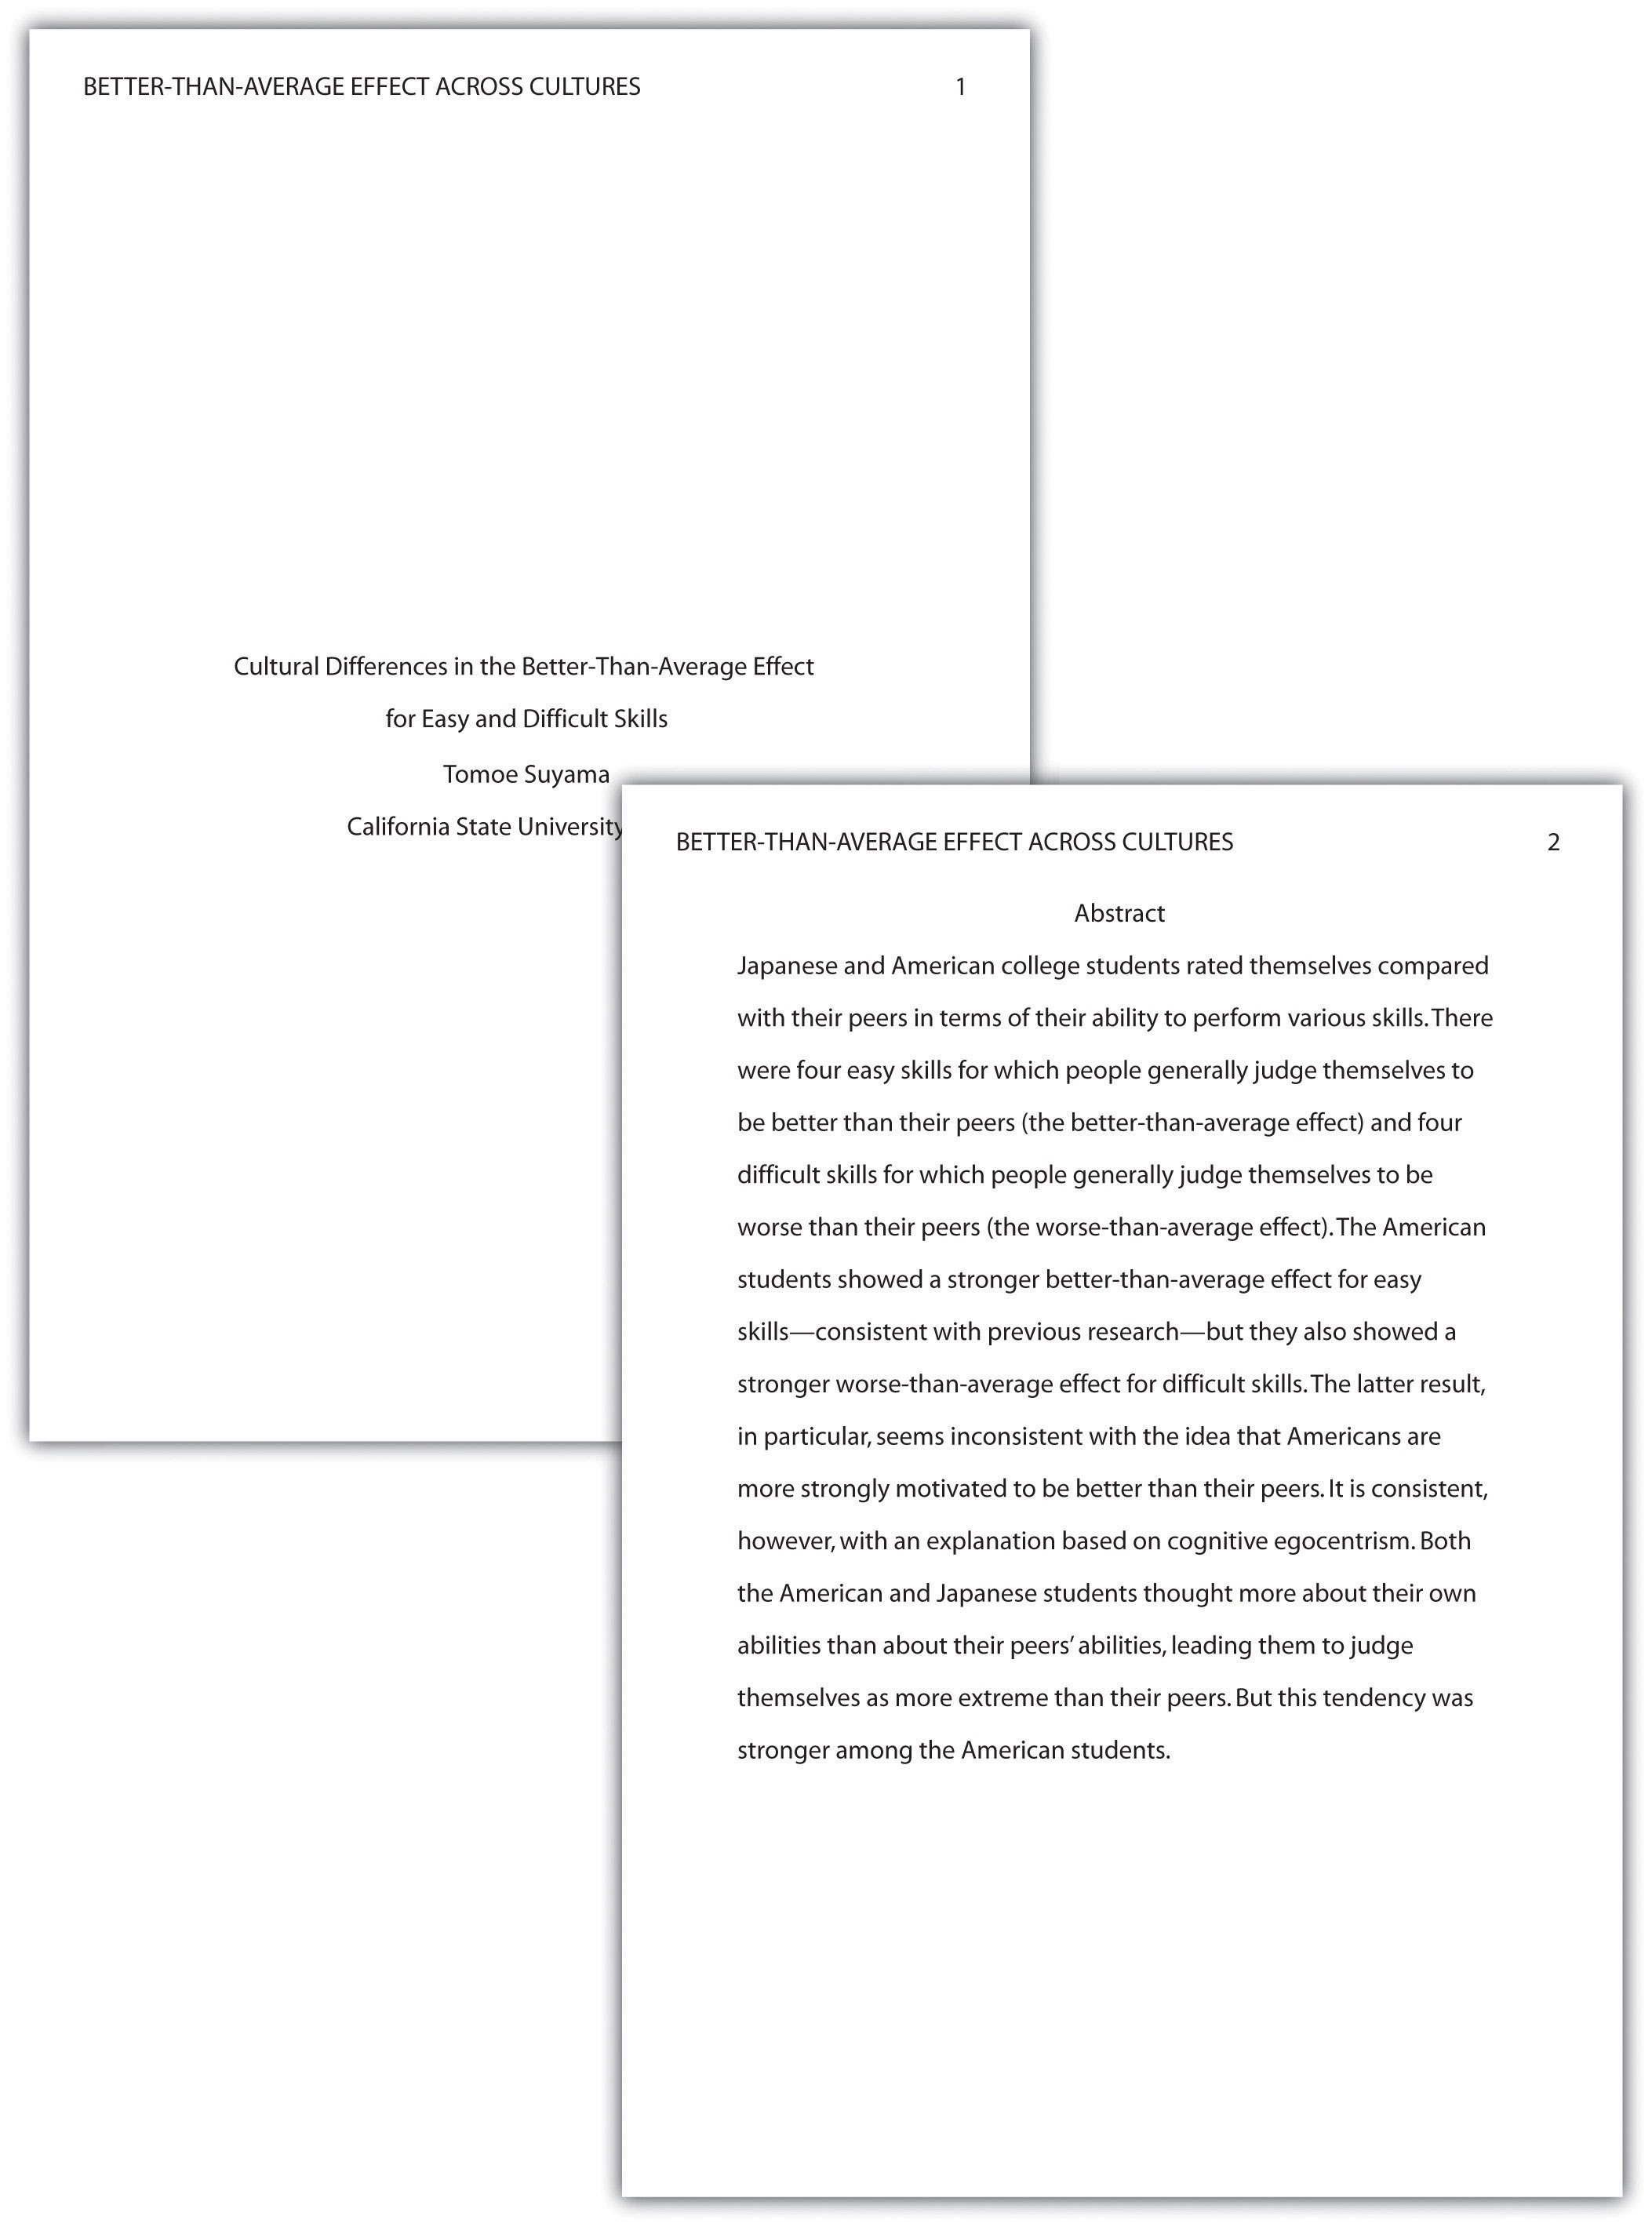 apa essay samples 17 best ideas about apa essay format apa format